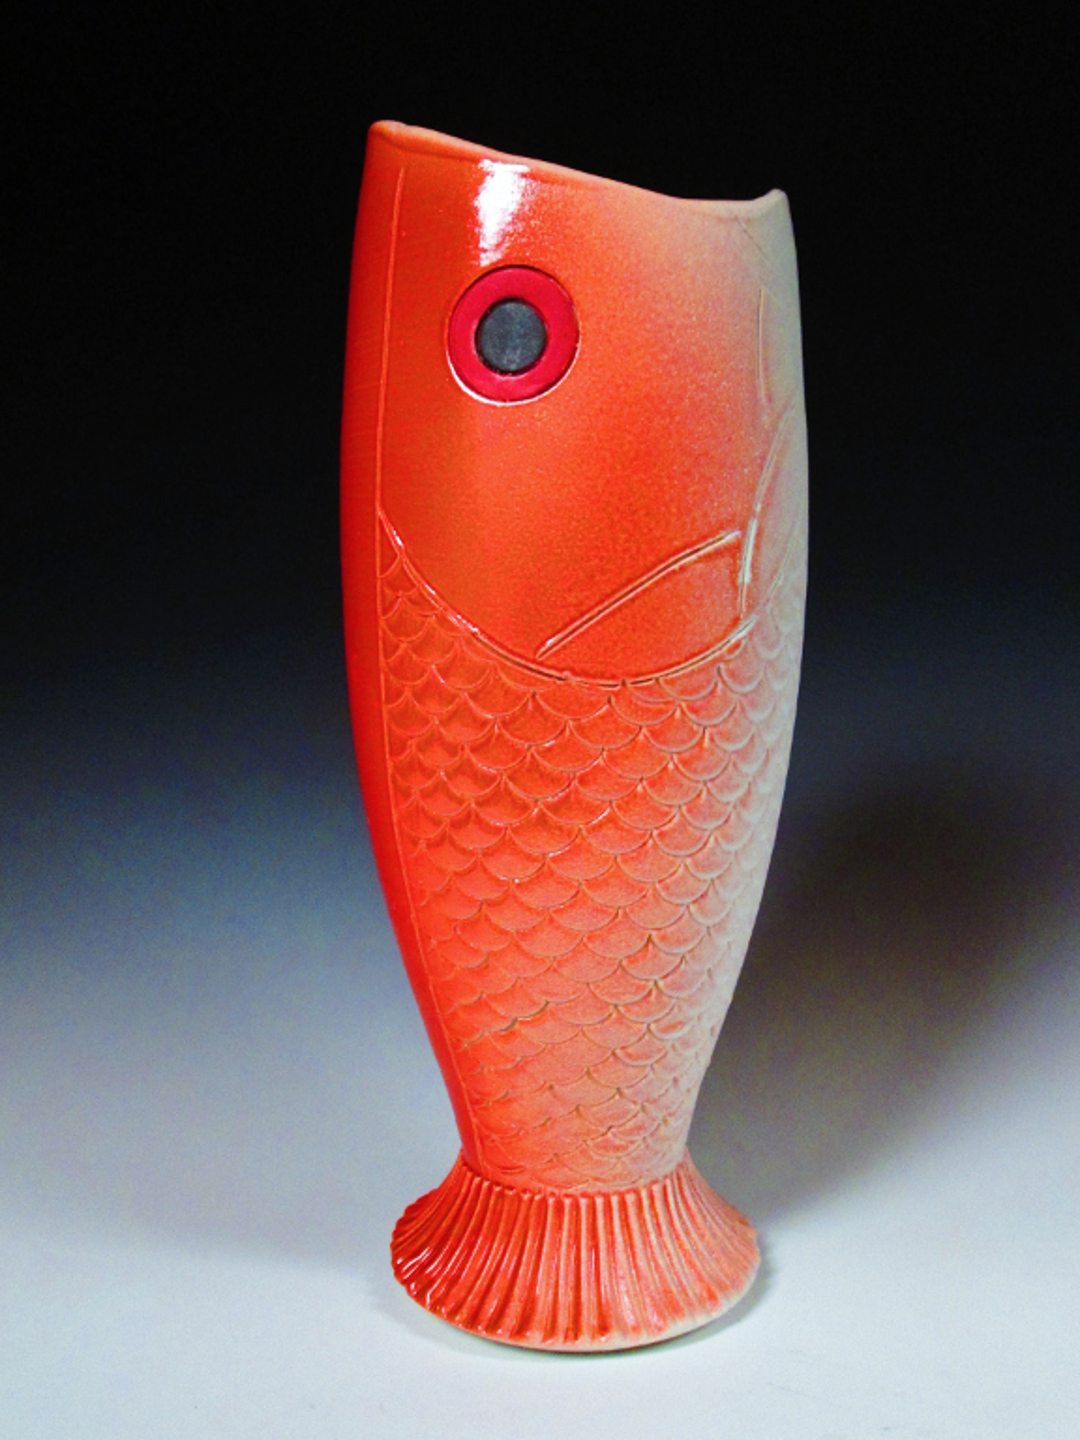 Red Fish Vase 12x4.5x4.5  Thrown and Altered Stoneware  $150.JPG